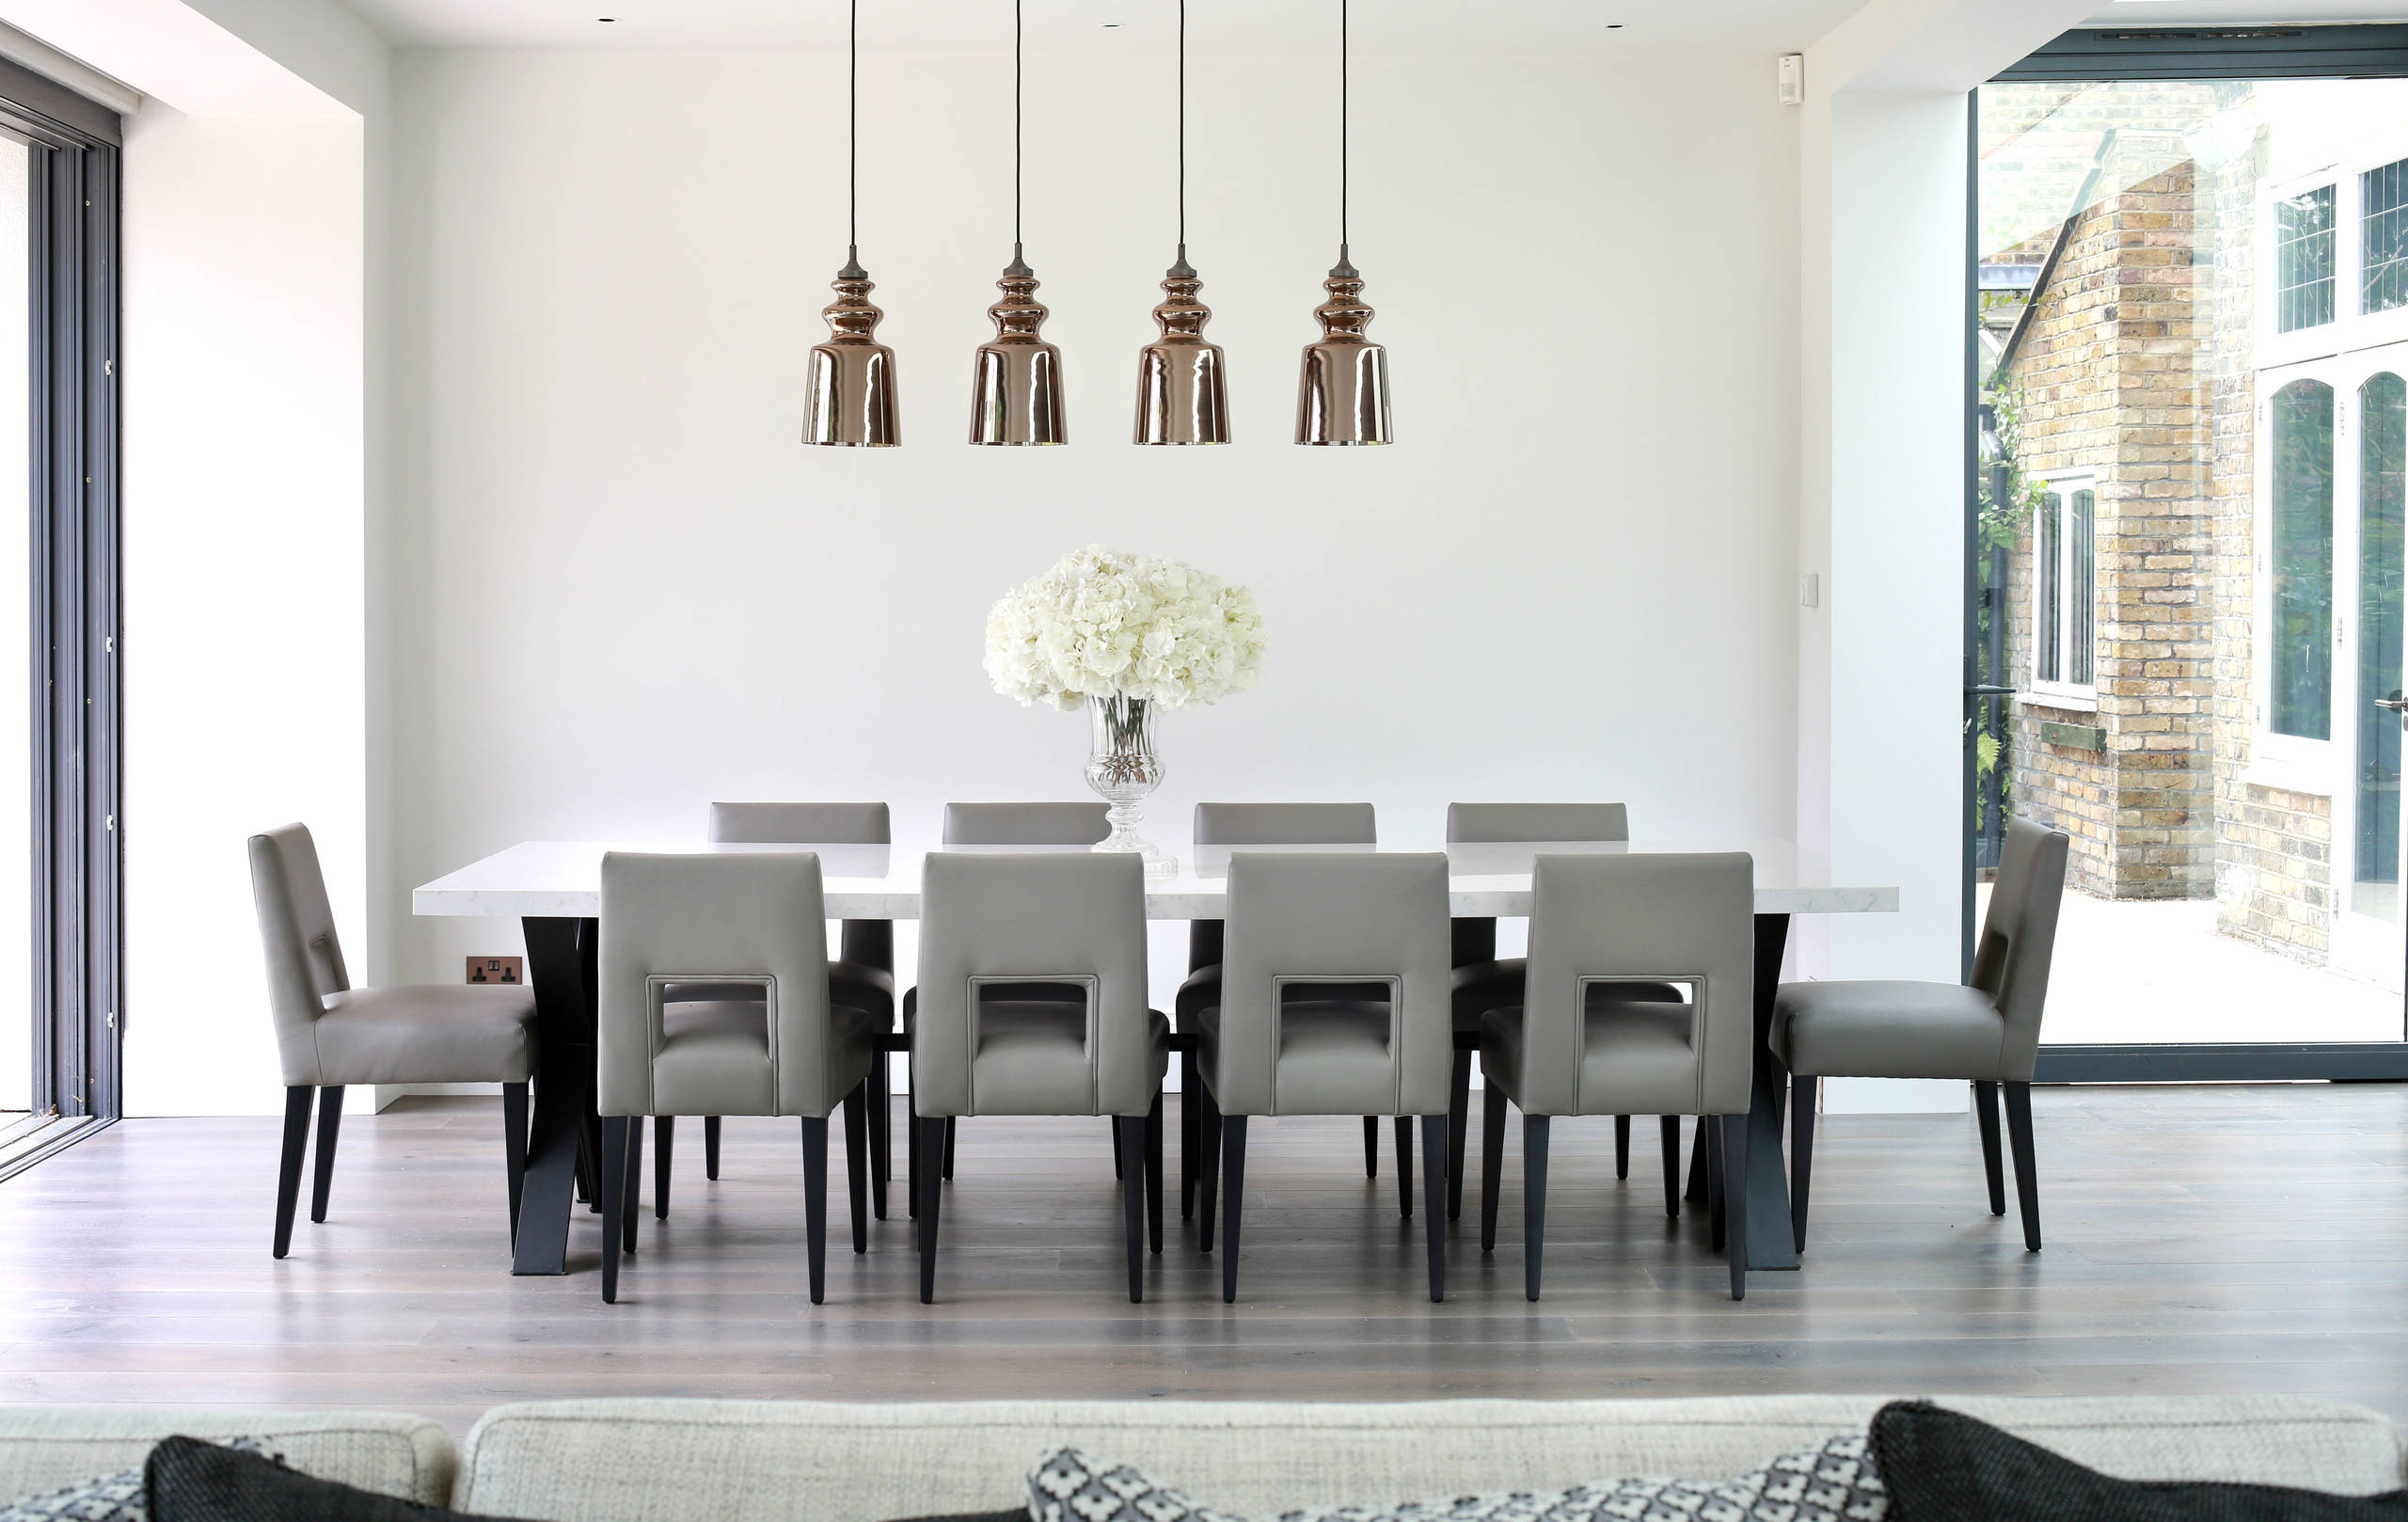 Large Dining Table Seats 12 14 People, Dining Room Table Seats 12